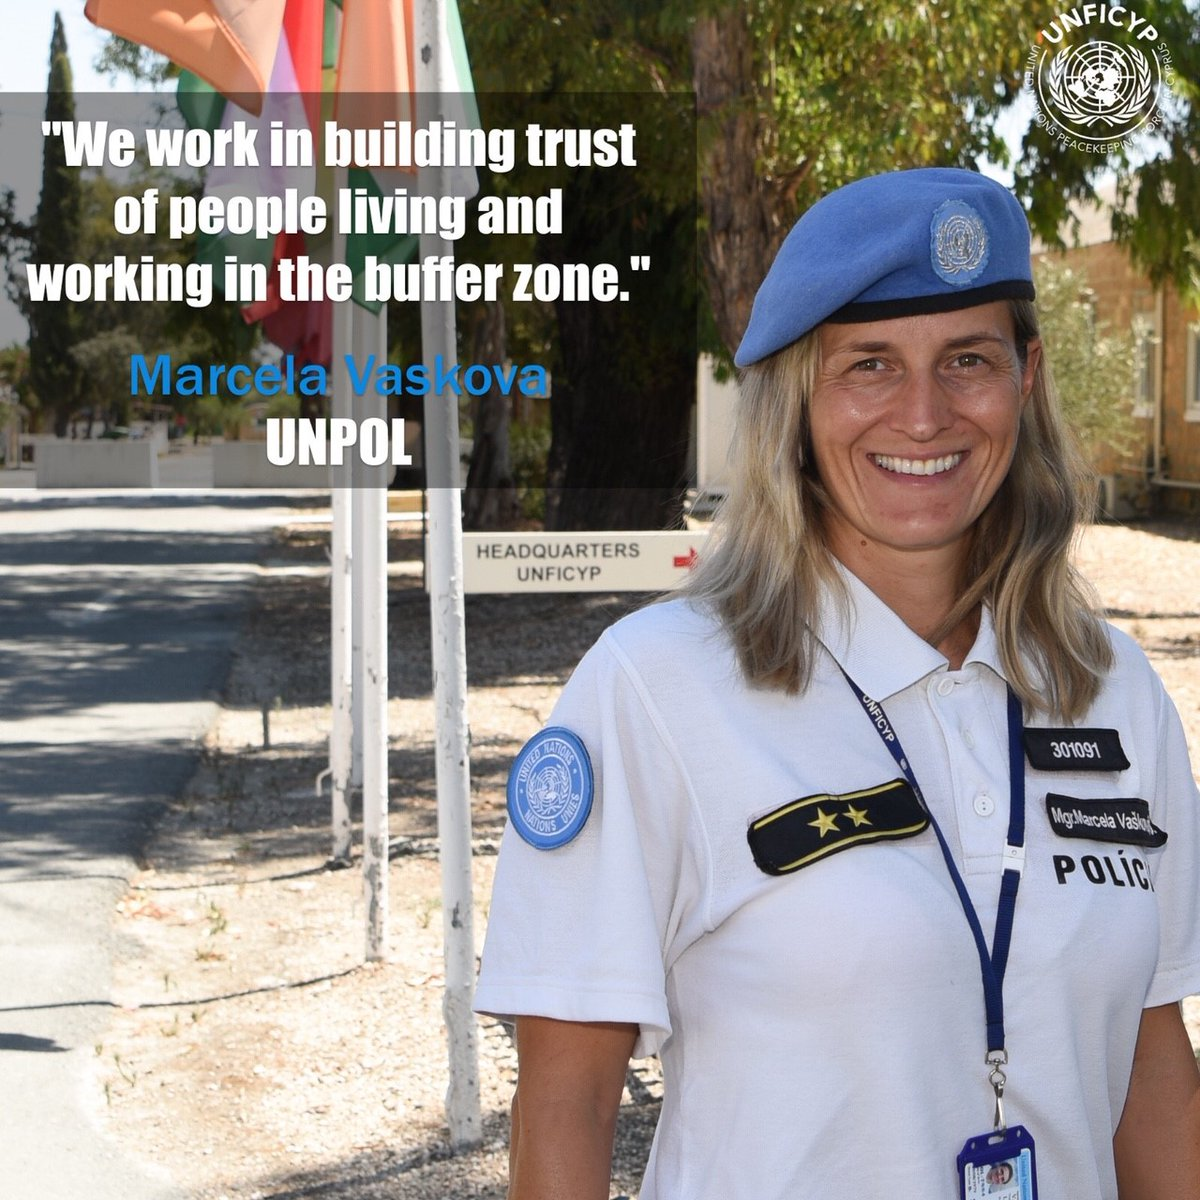 Meet Marcela Vaskova, one of our @UNPOL officers from Slovakia, who is working in #Pyla and how her role is contributing to peace in #Cyprus. Her full interview is on #BlueBeret magazine: https://t.co/7yLlCRungV #WPSin2020 #A4P #Serving4Peace https://t.co/pqOn0ZVHol